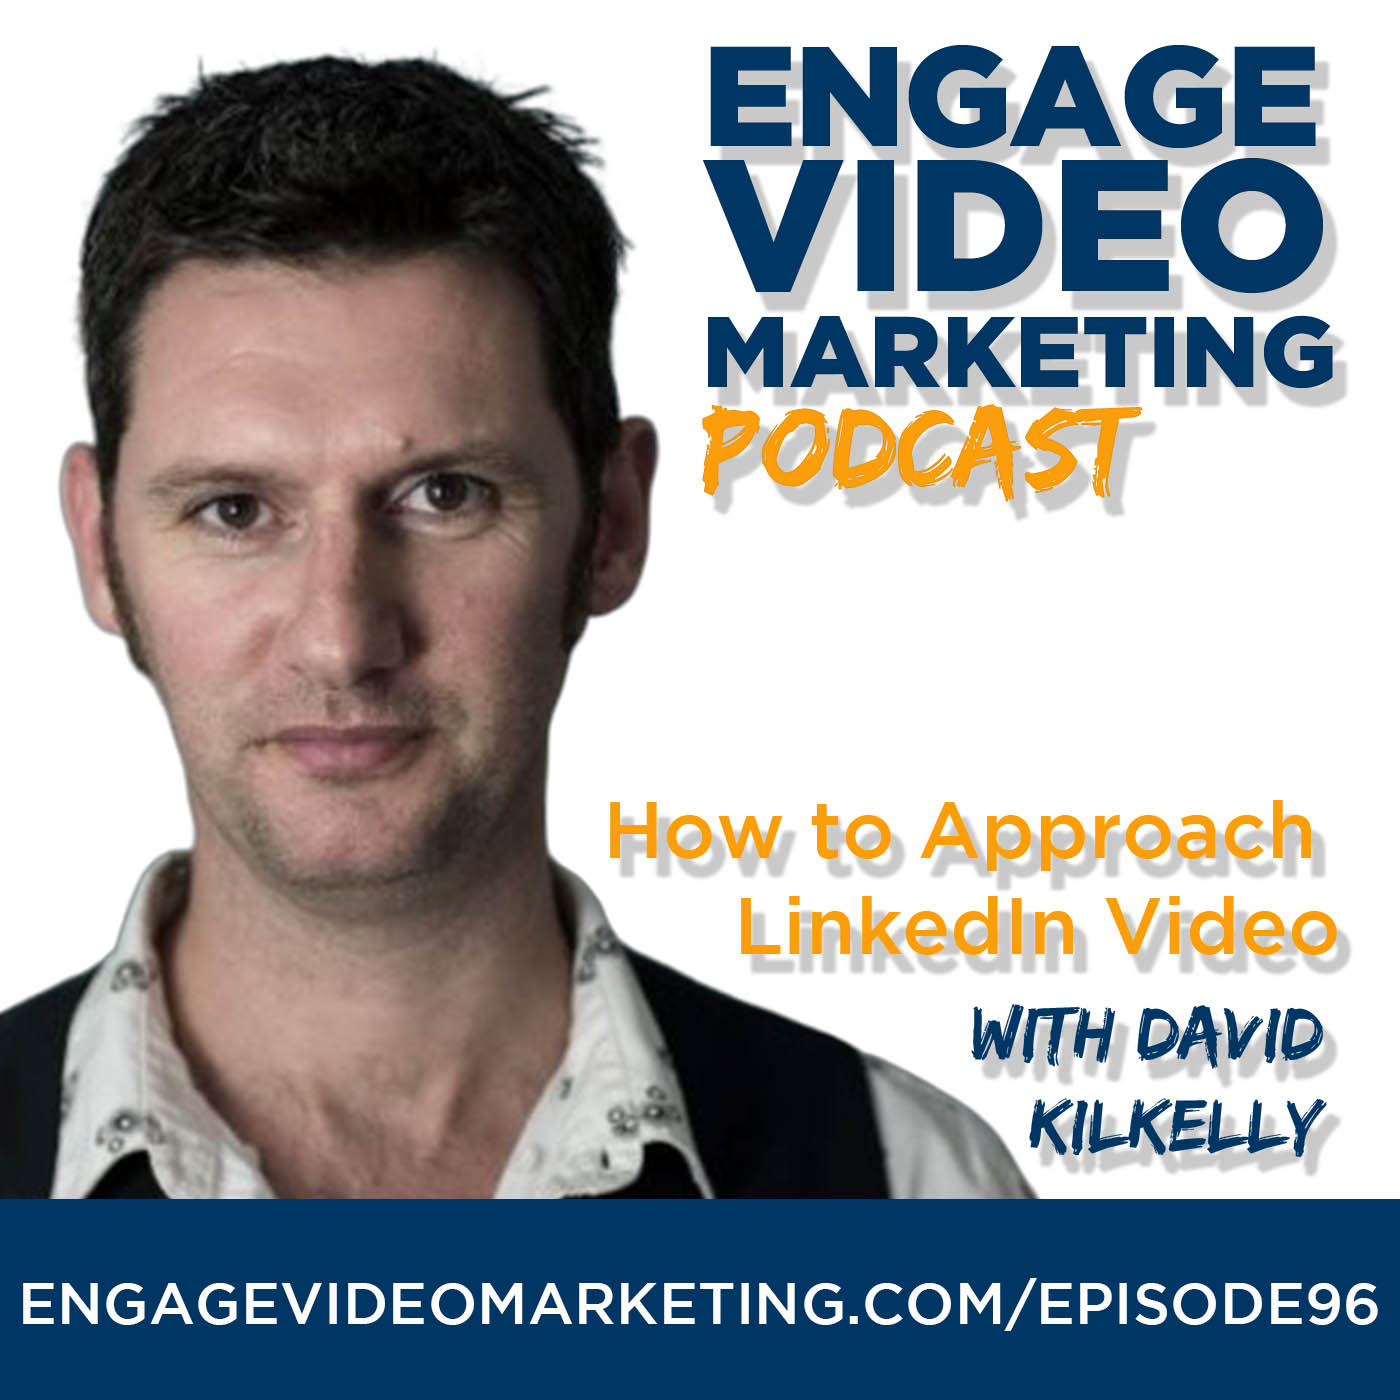 How to Approach LinkedIn Video with David Kilkelly